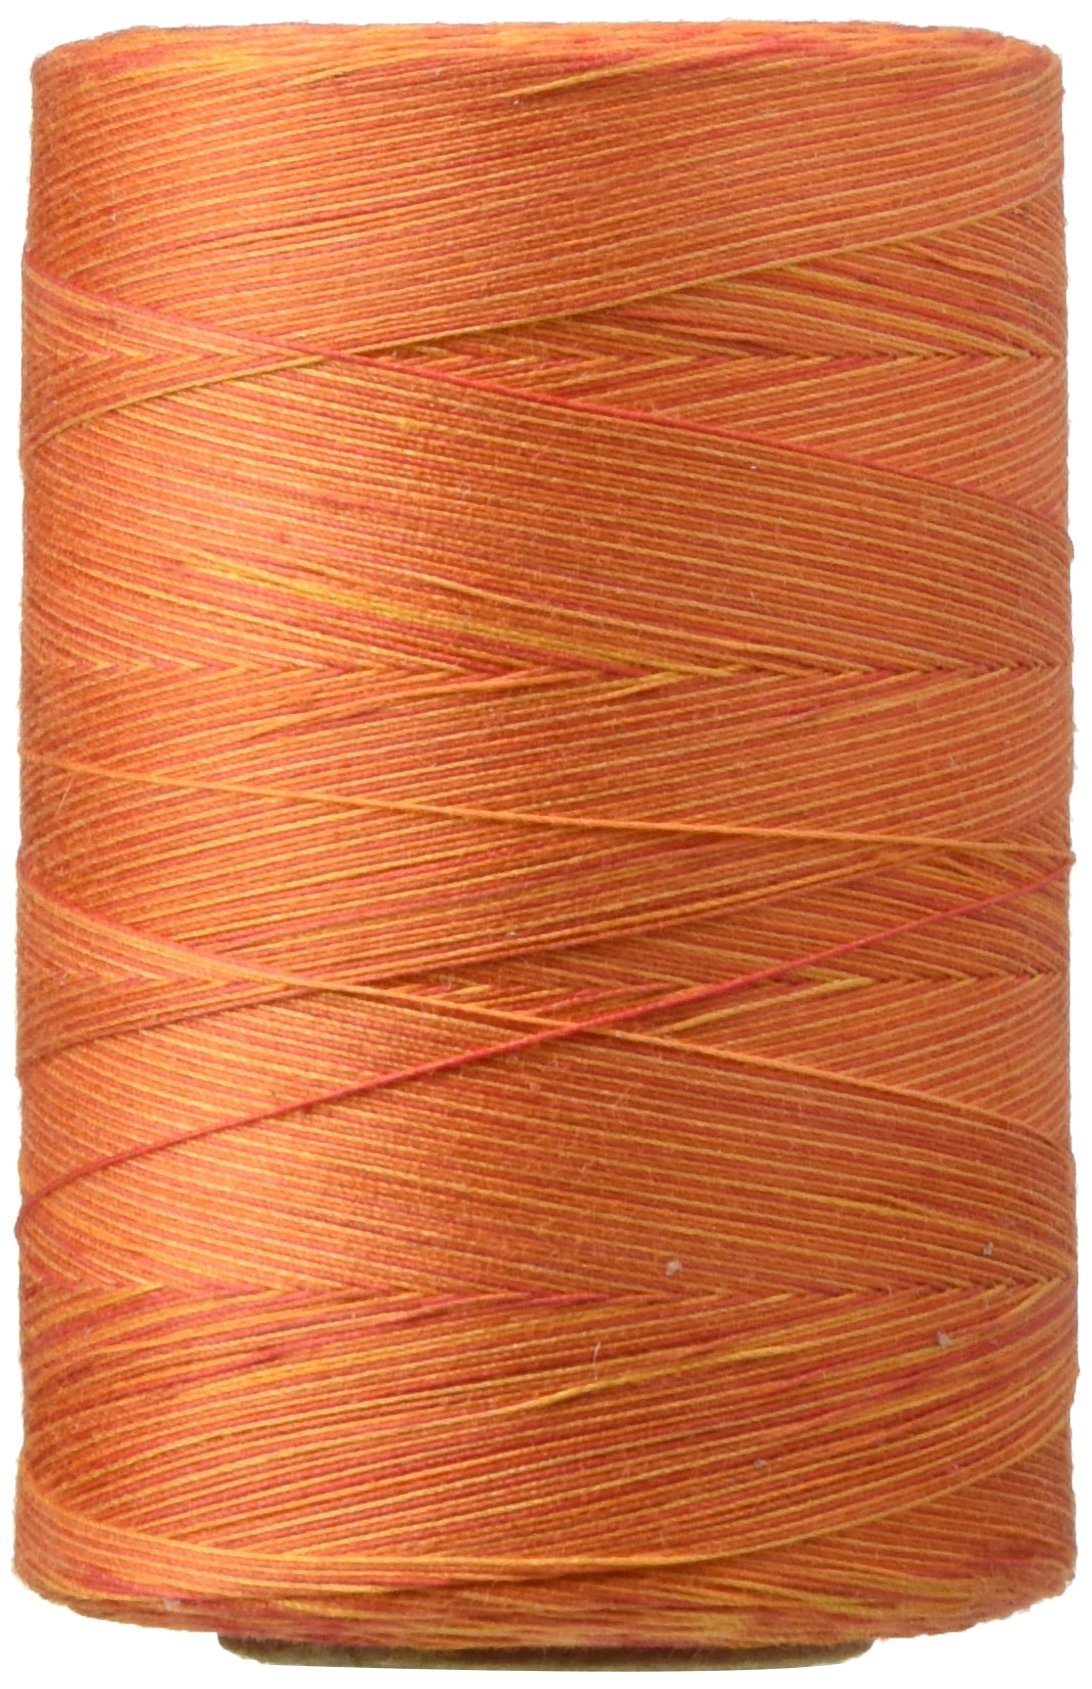 Star Thread V38-838 3-Ply 30wt T-35 Cotton Quilting